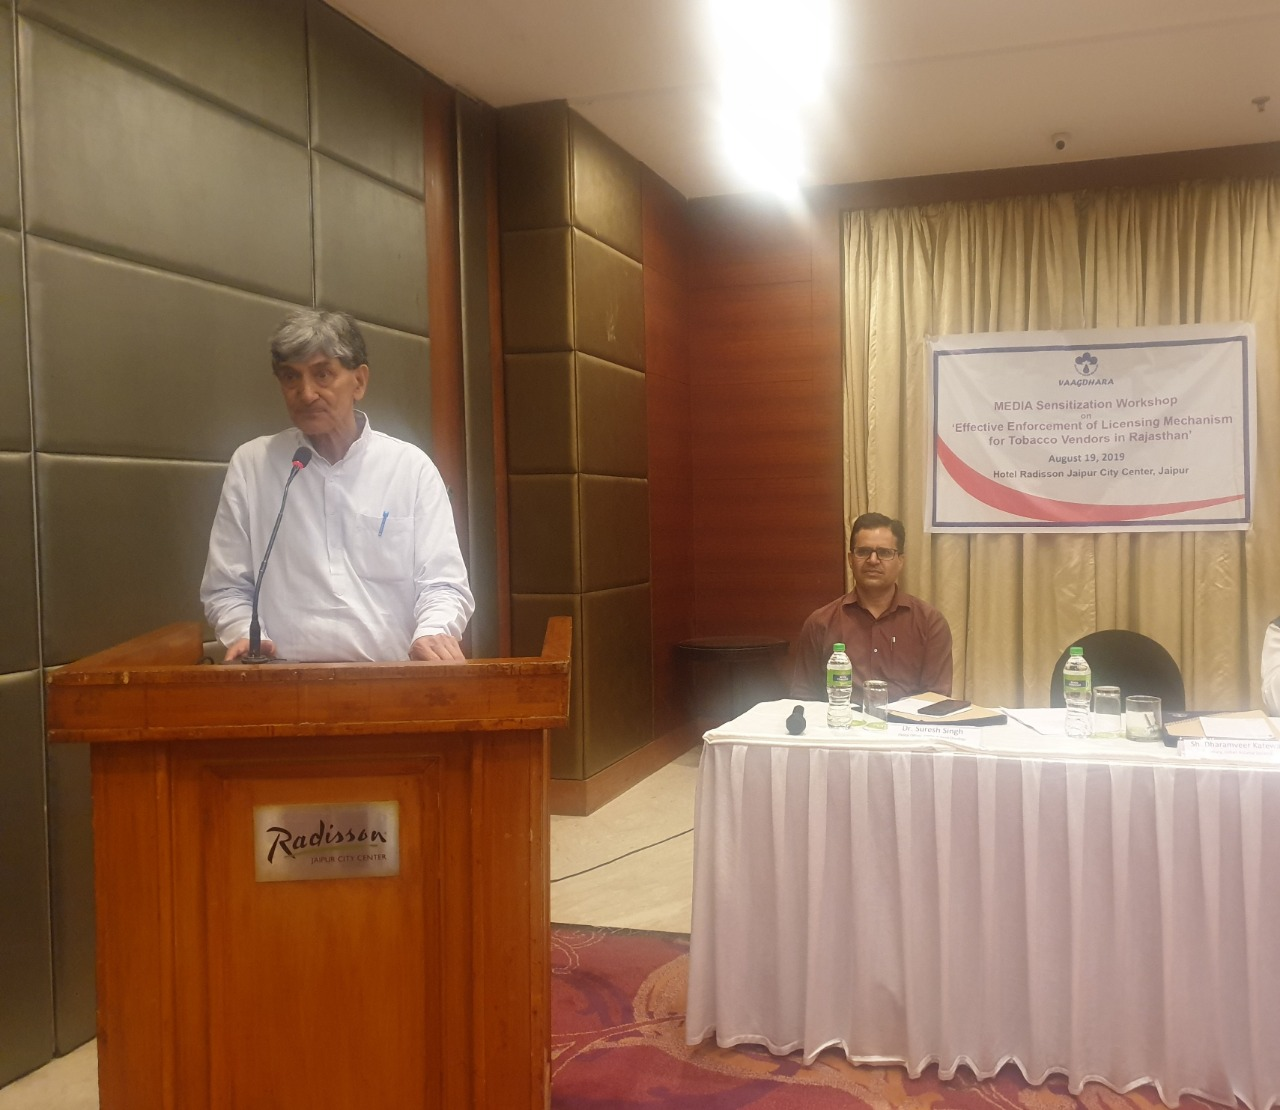 Media-Sensitization-Workshop-2019-4